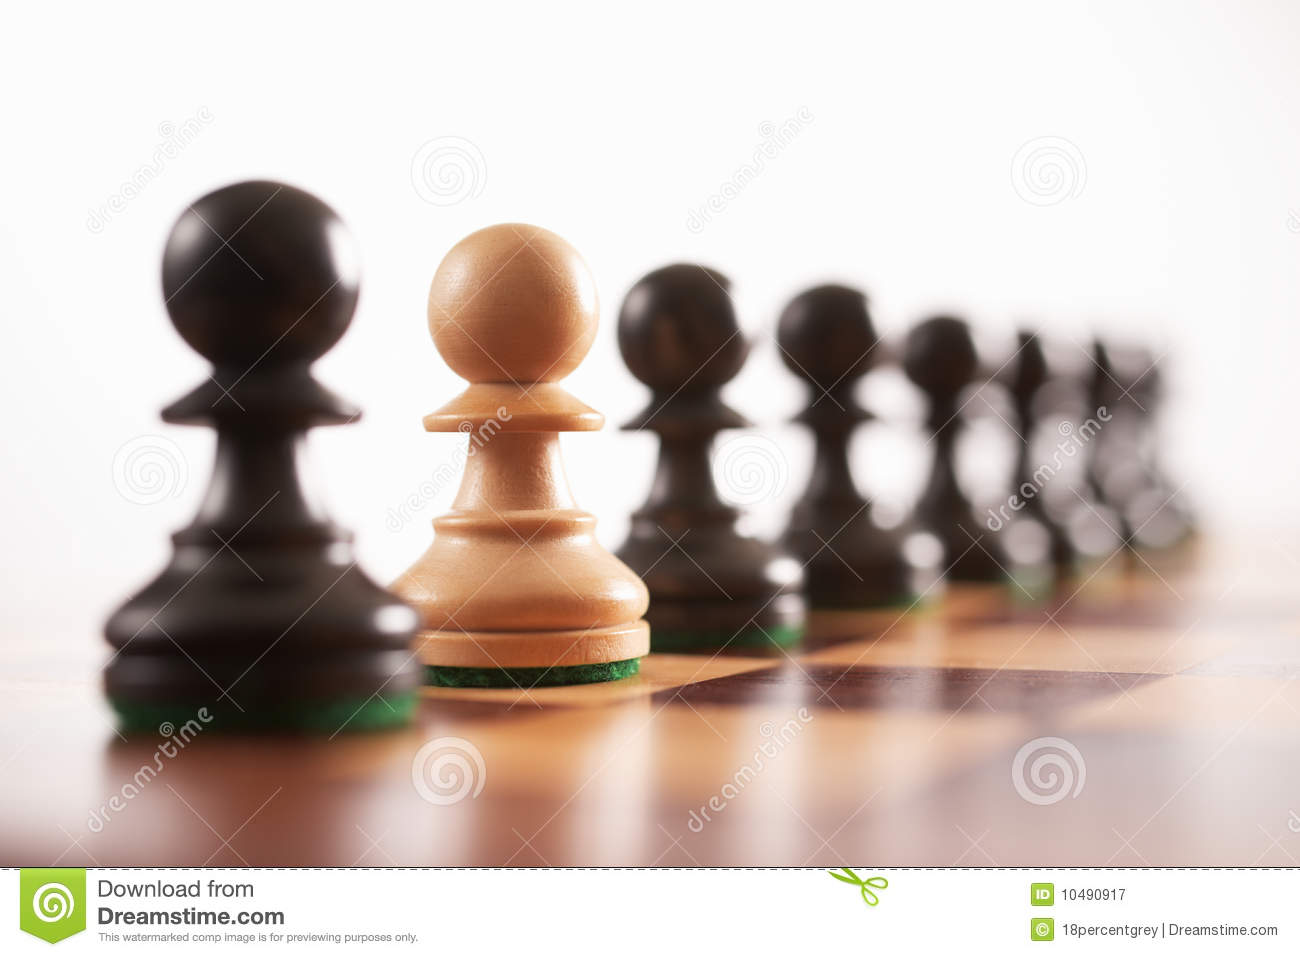 Chess the odd one out